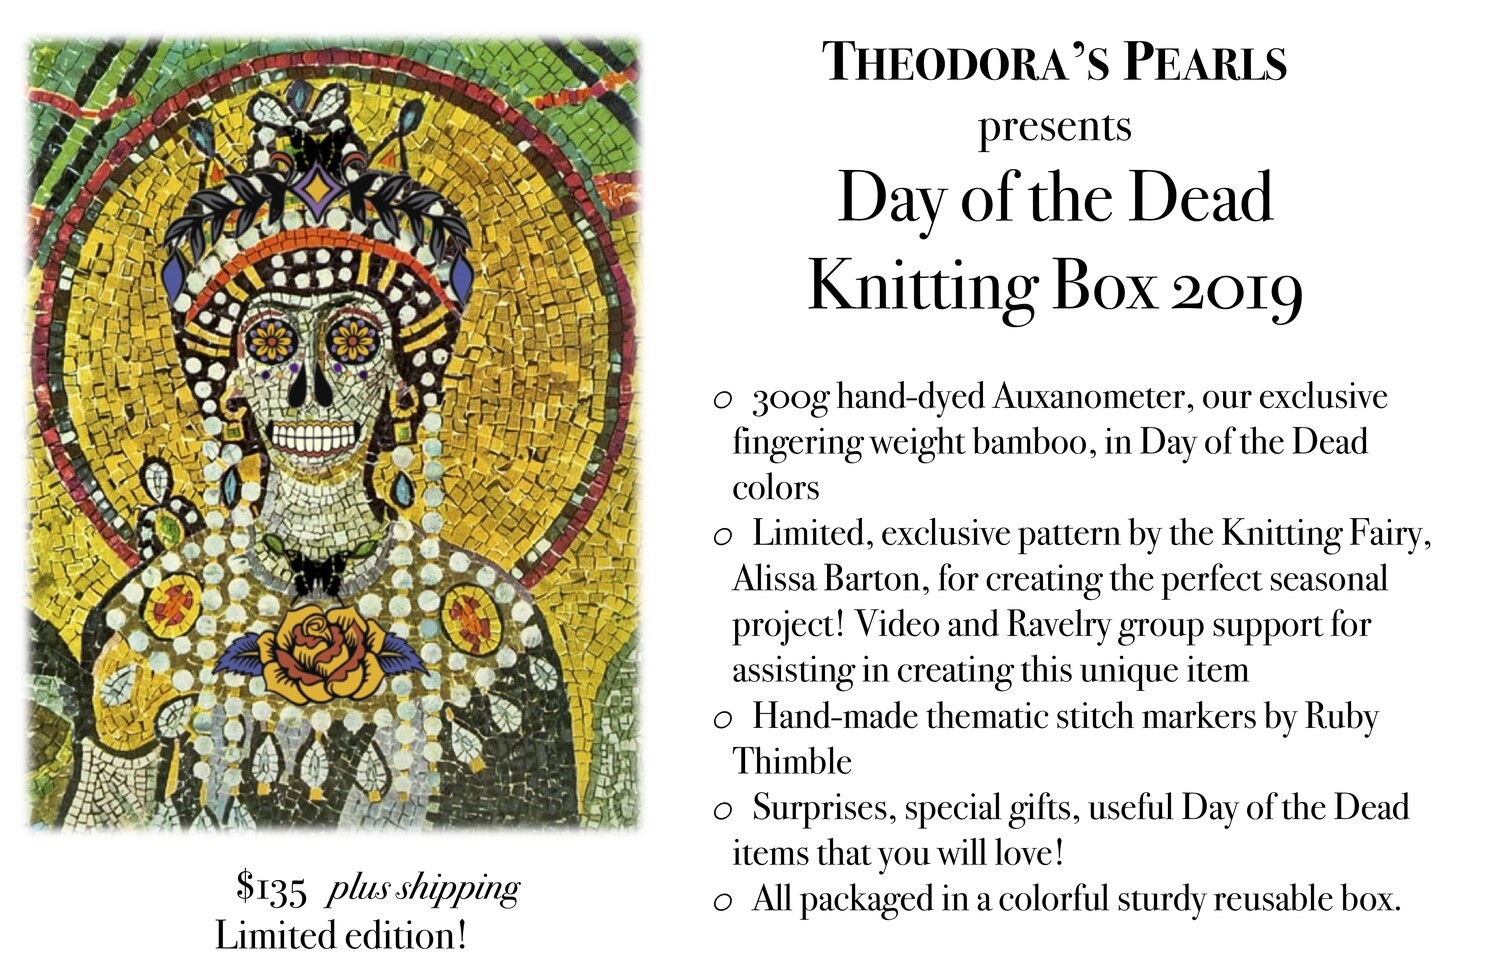 Day of the Dead Box 2019  - Pick up